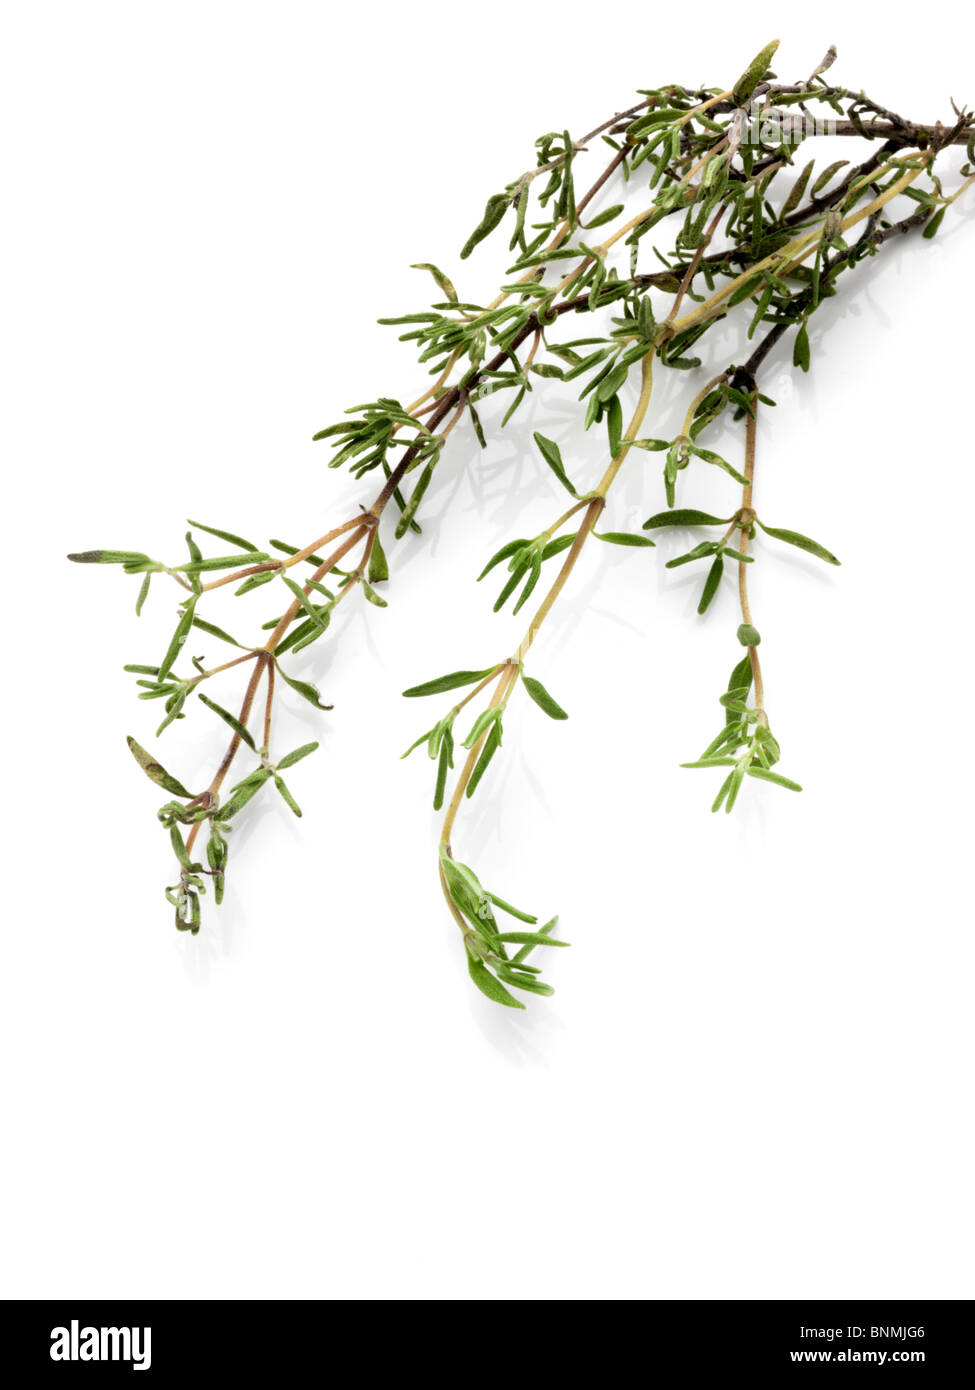 Thyme on a white background - Stock Image